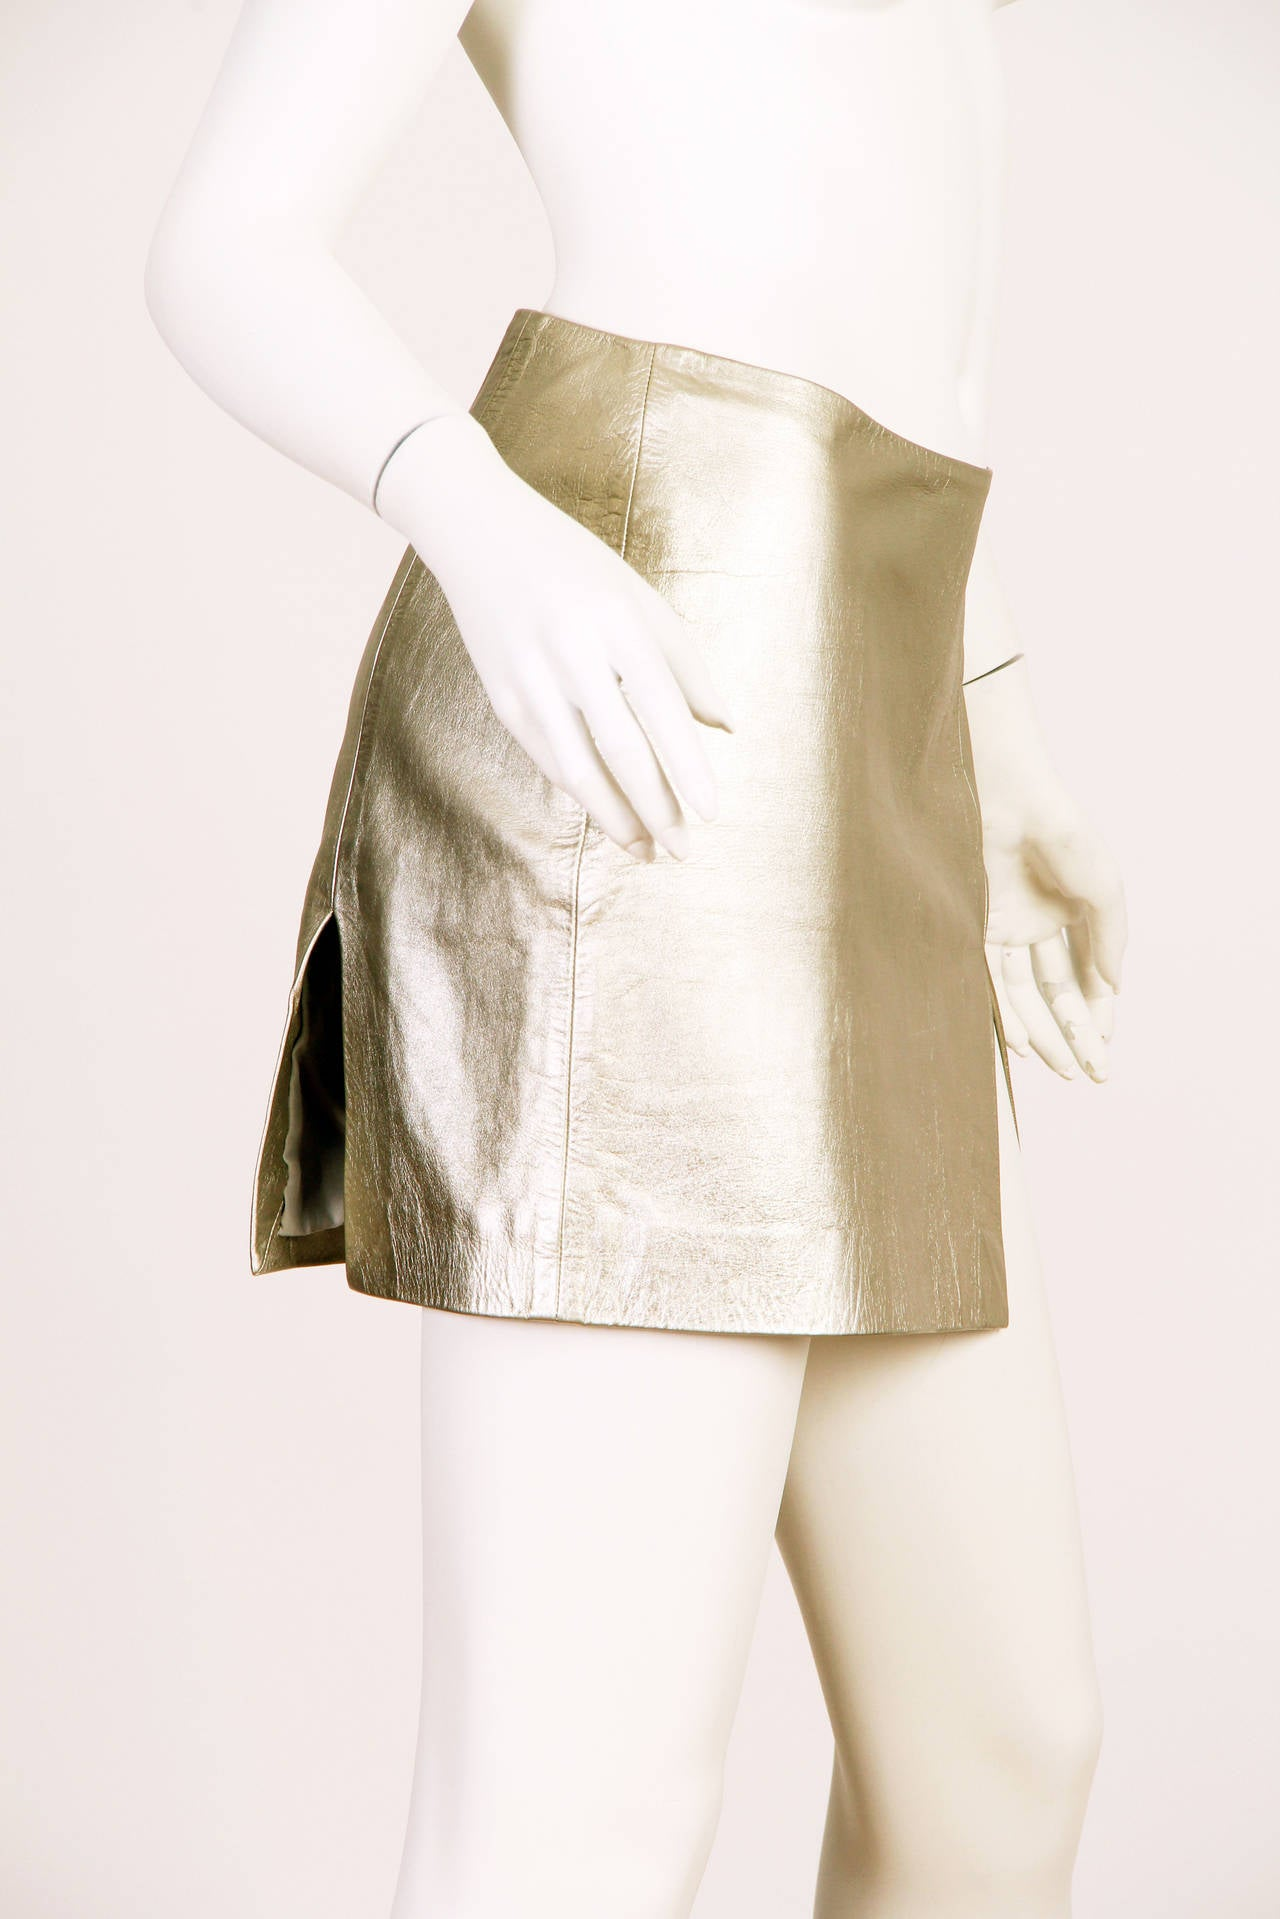 Iconic Documented 1994 Supermodel Gianni Versace Couture Silver Leather Skirt In Excellent Condition For Sale In New York, NY